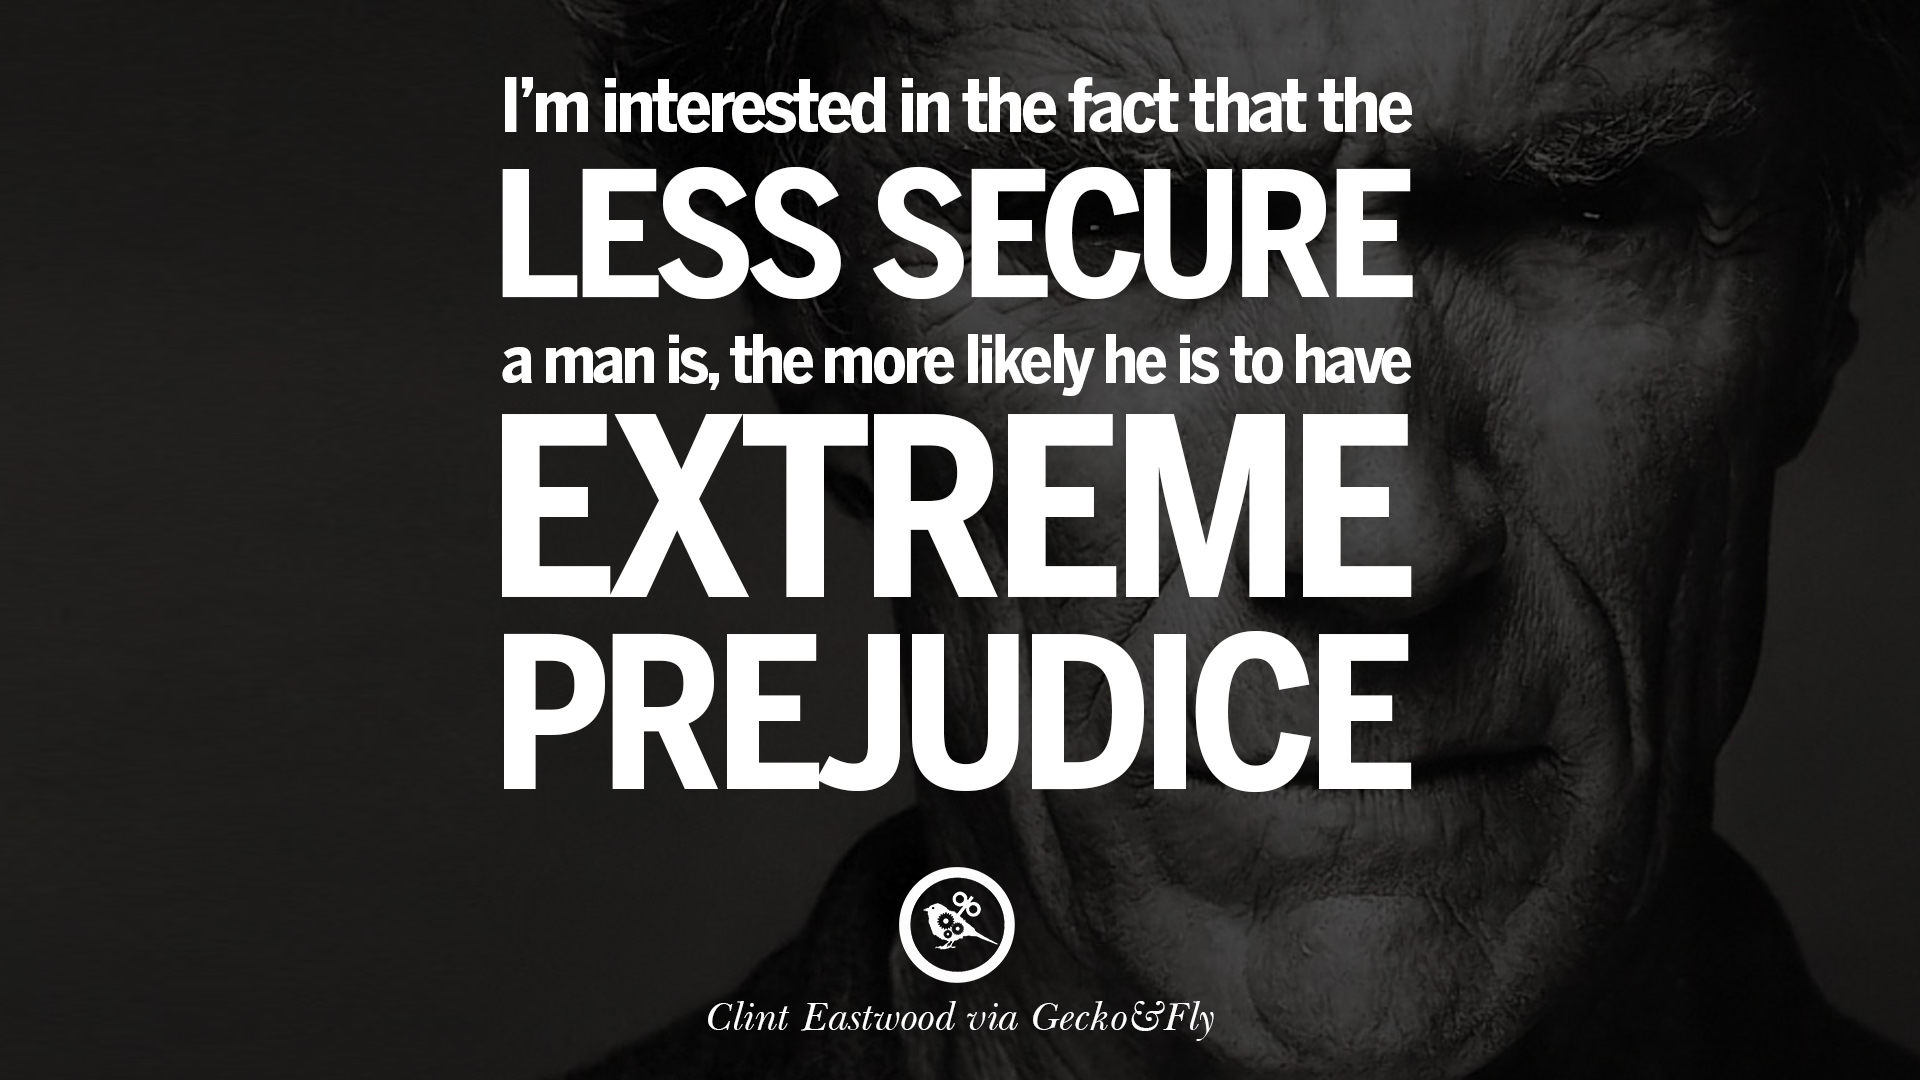 24 Inspiring Clint Eastwood Quotes On Politics, Life And Work